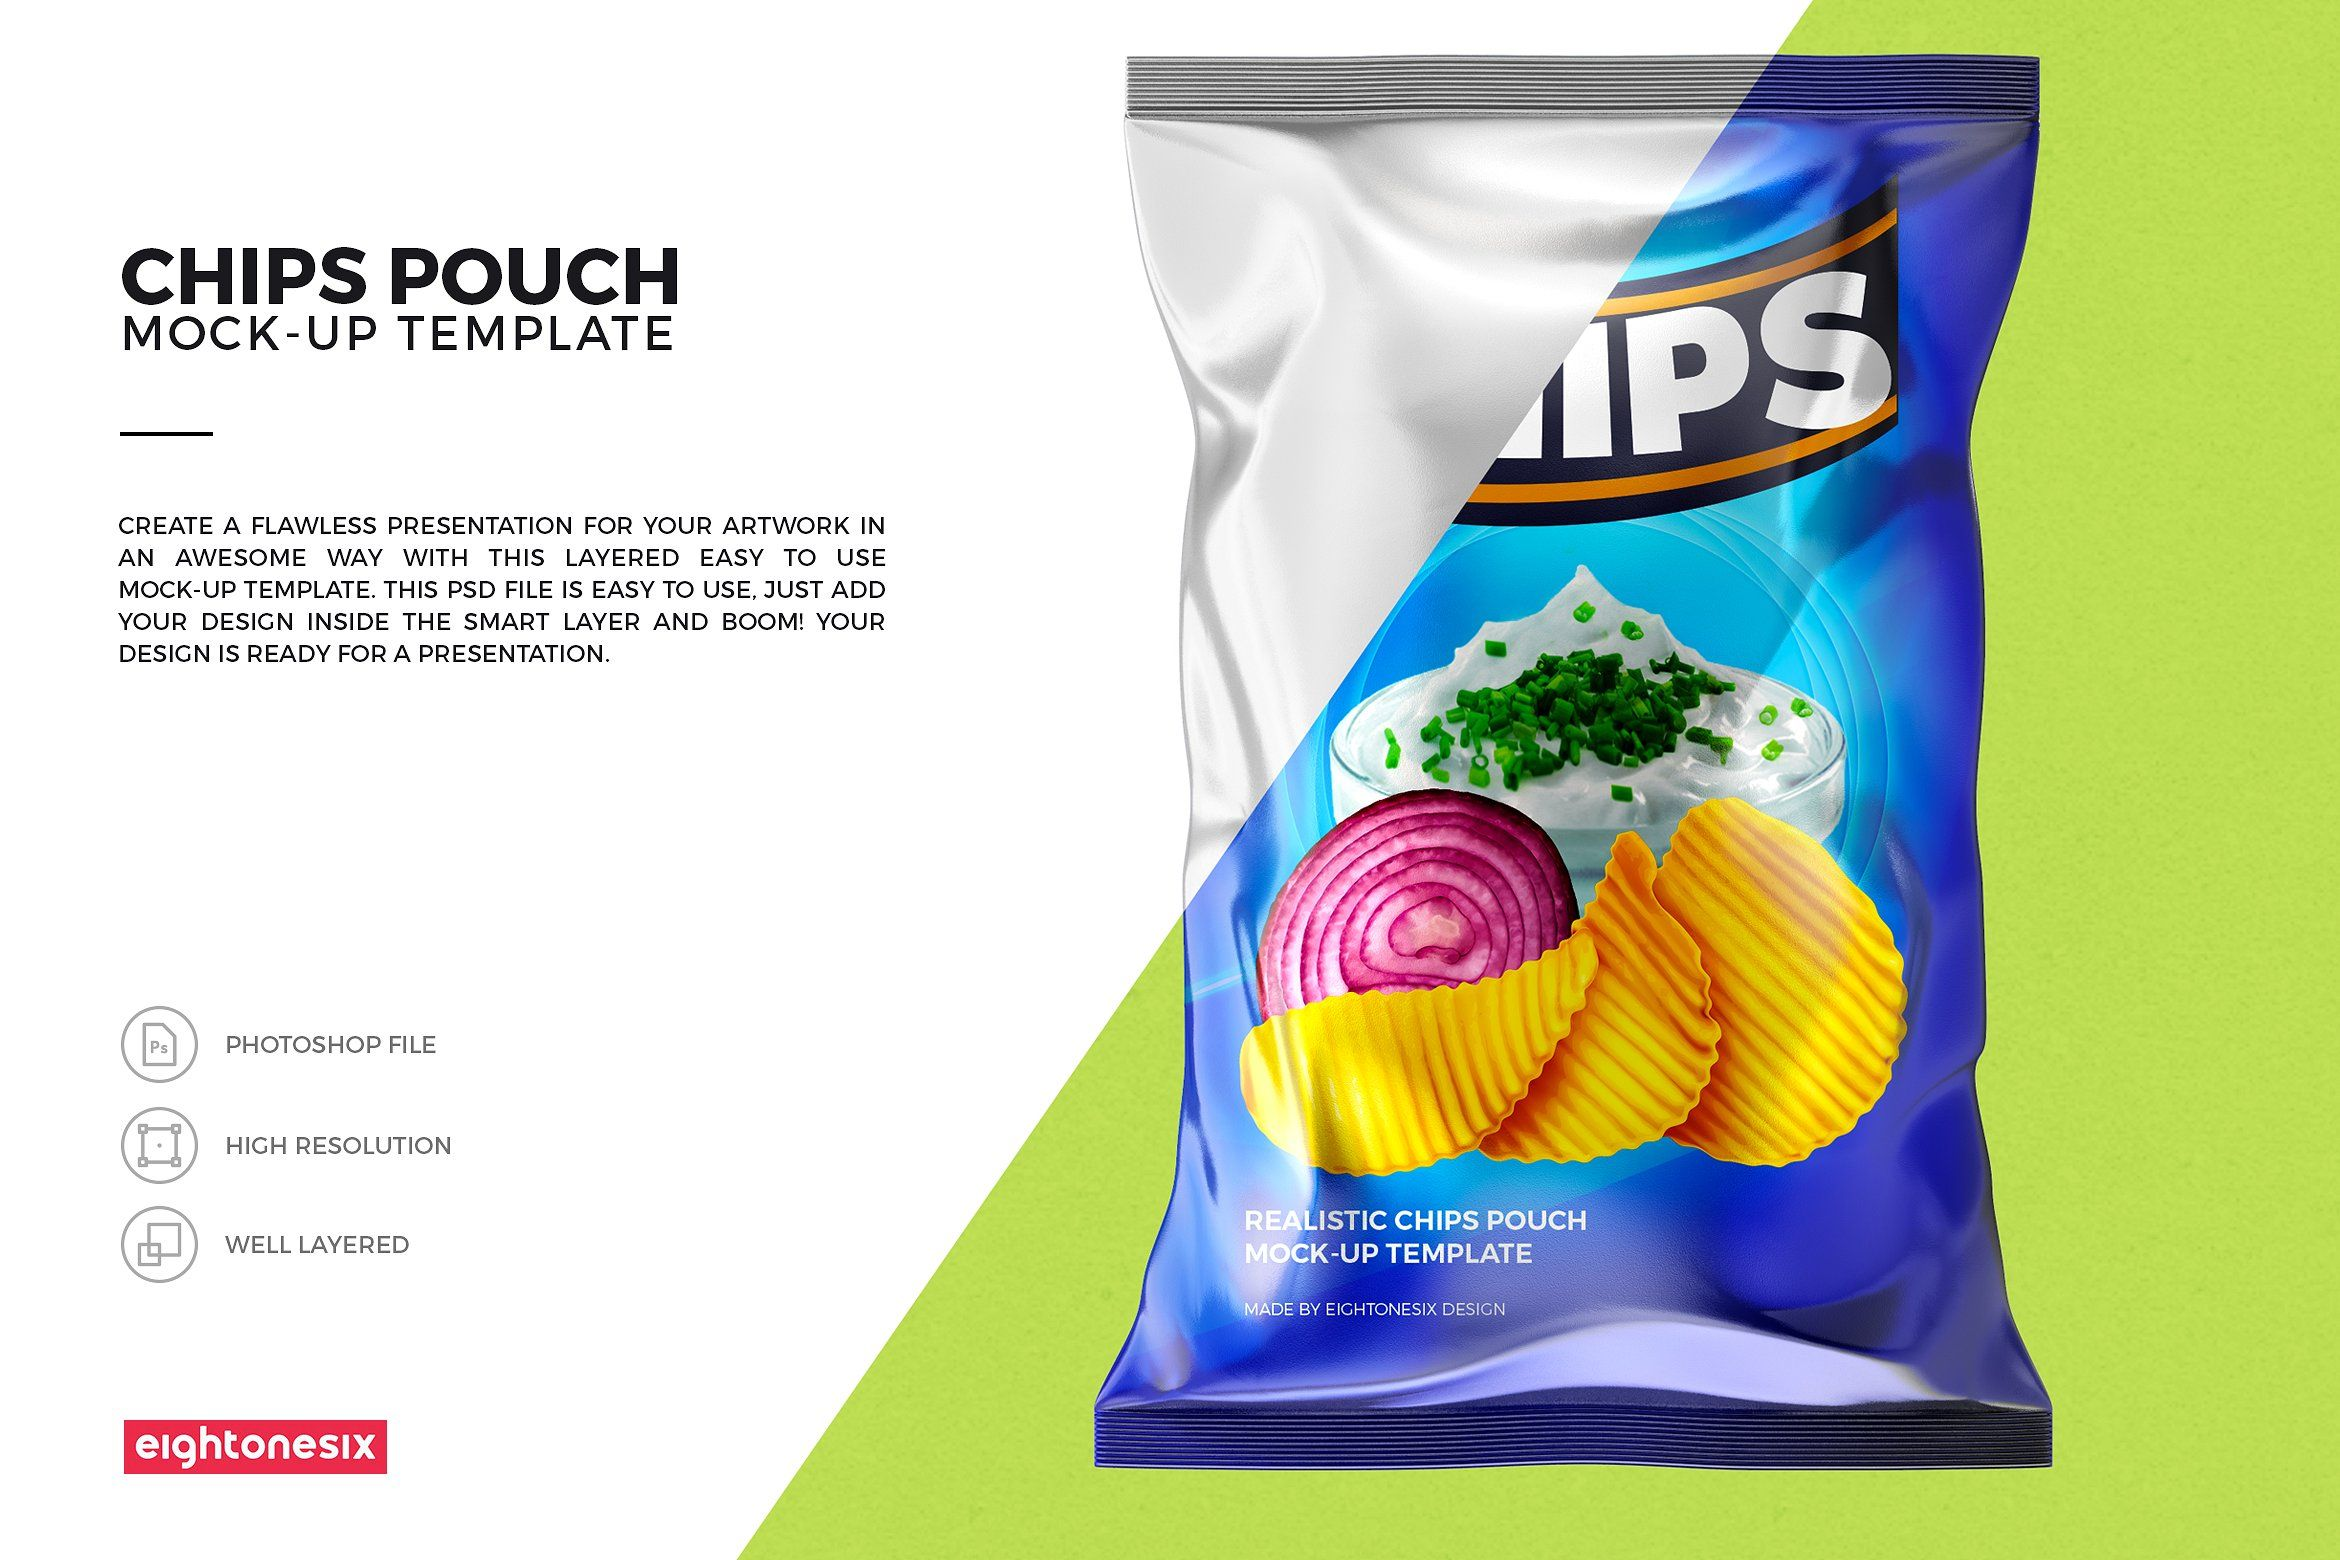 Download Realistic Chips Pouch Mock Up Mockup Chips Mocking